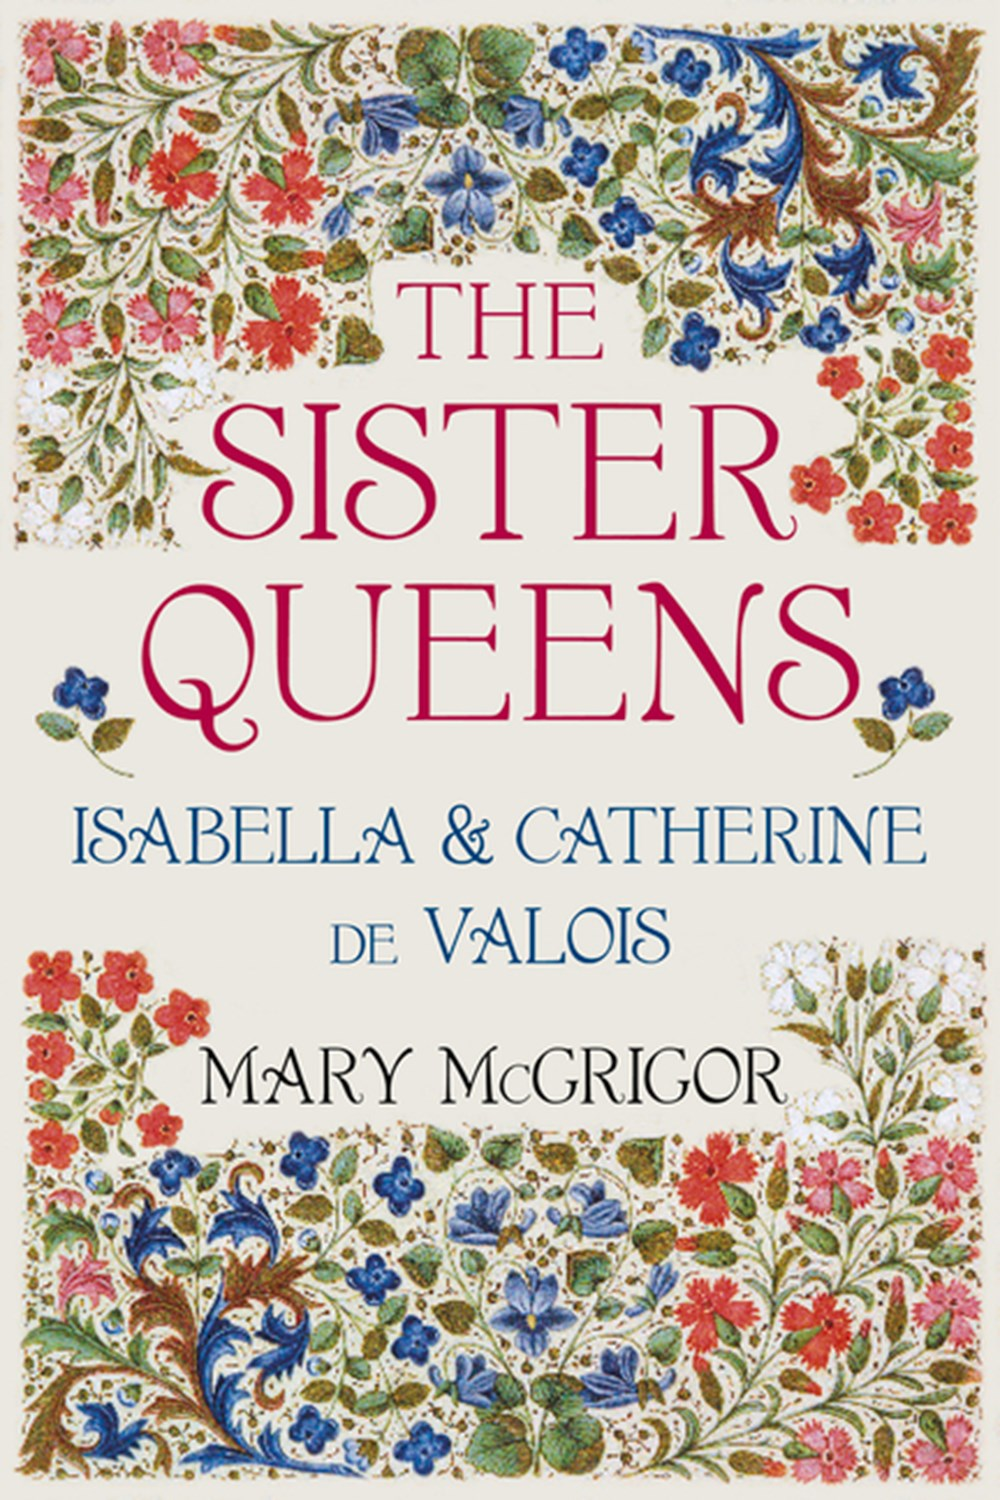 Sister Queens Isabella & Catherine de Valois